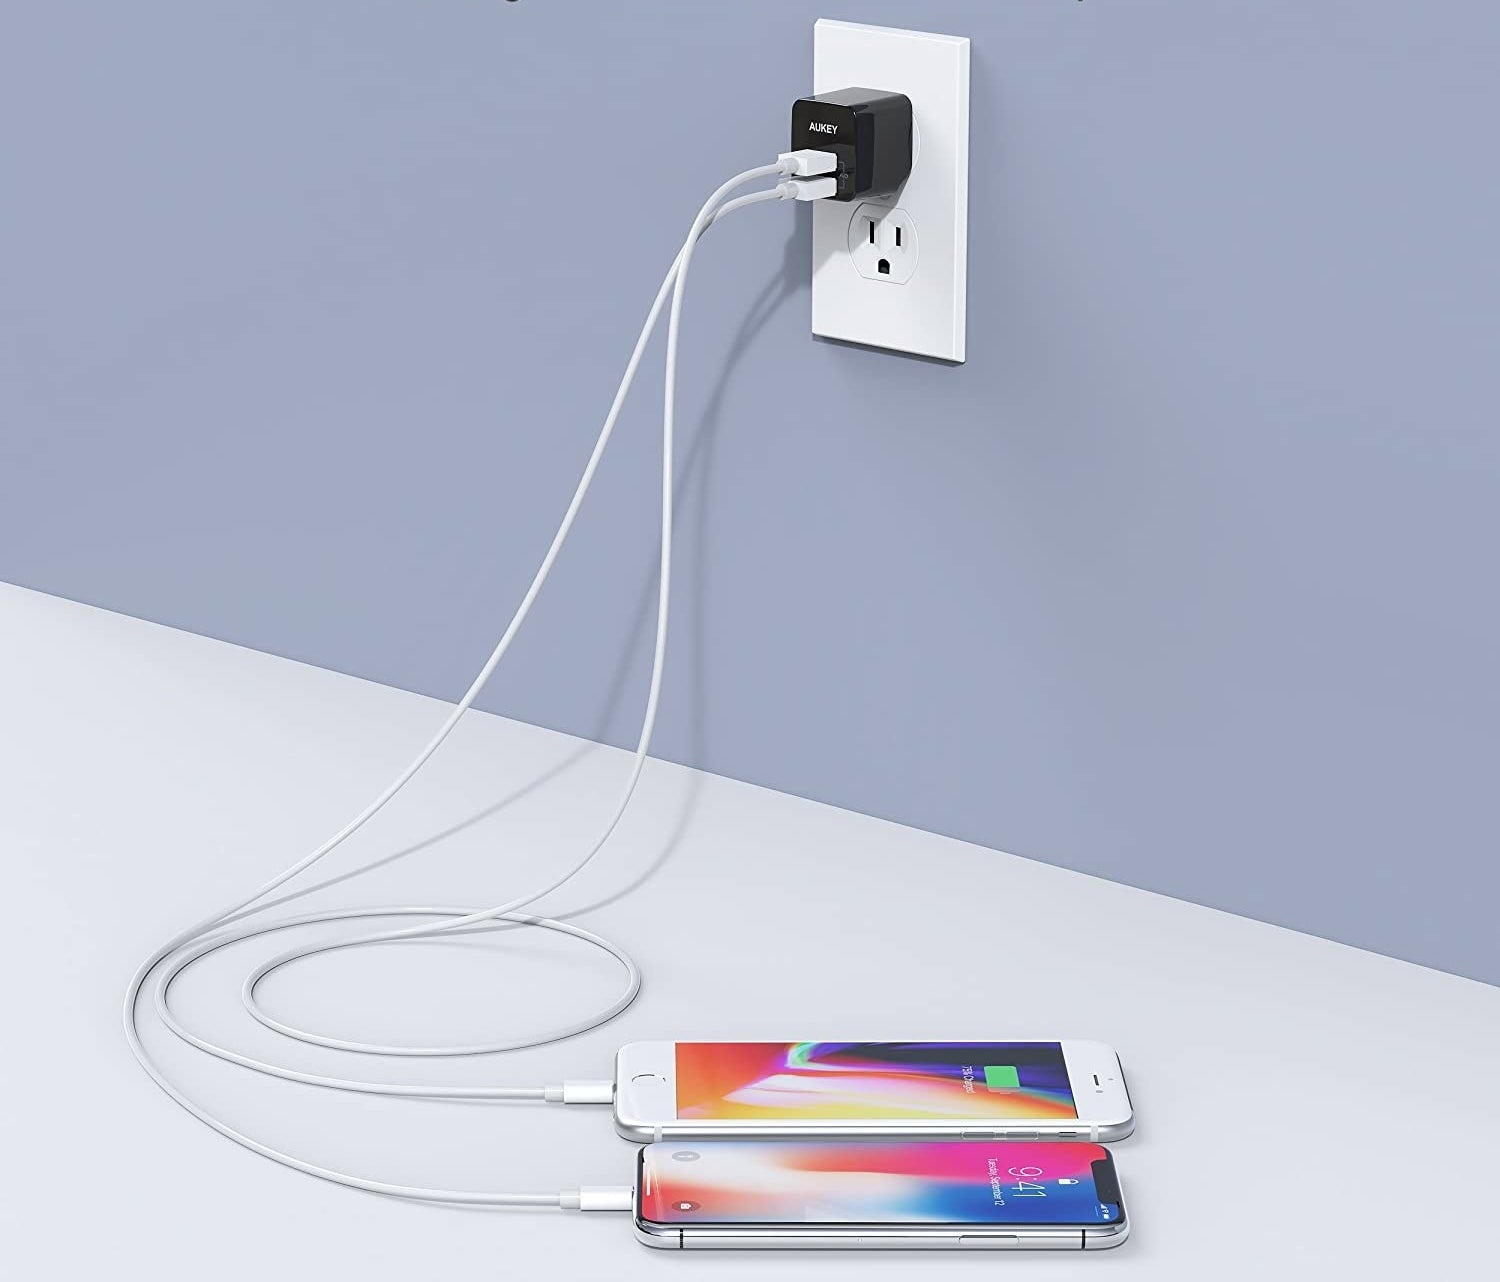 A charger plugged into the wall charging two phones